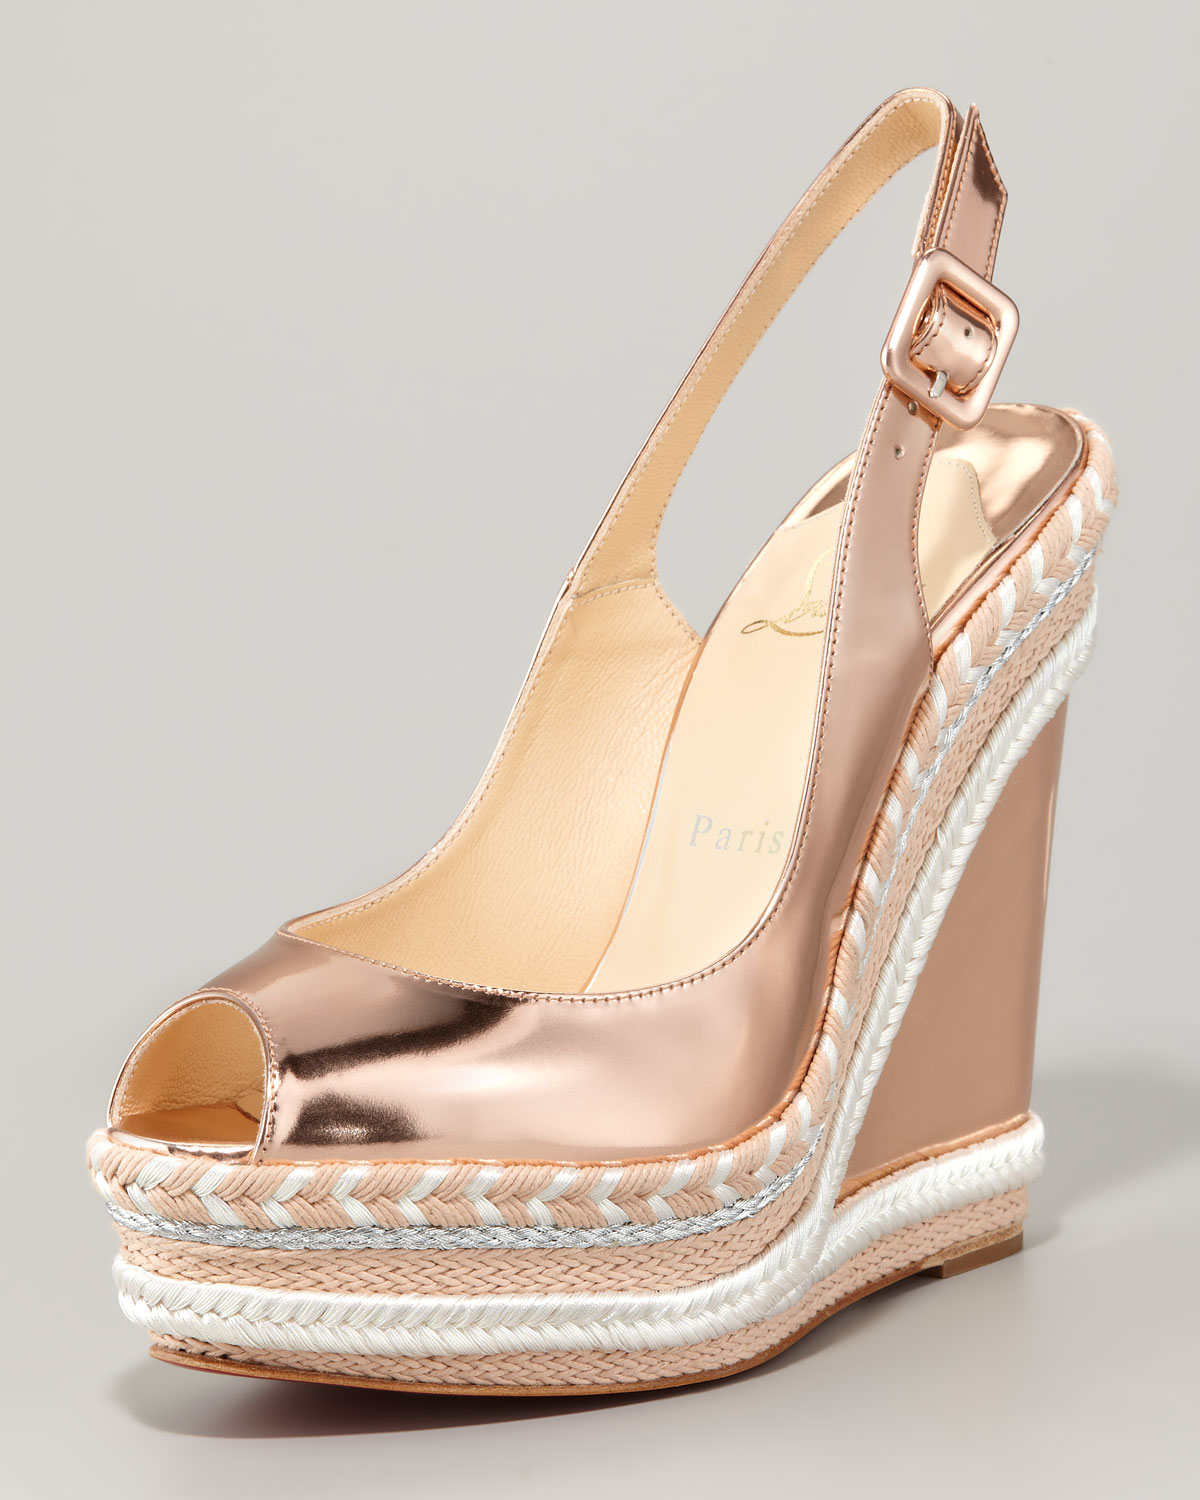 christian louboutin gold wedge sandals